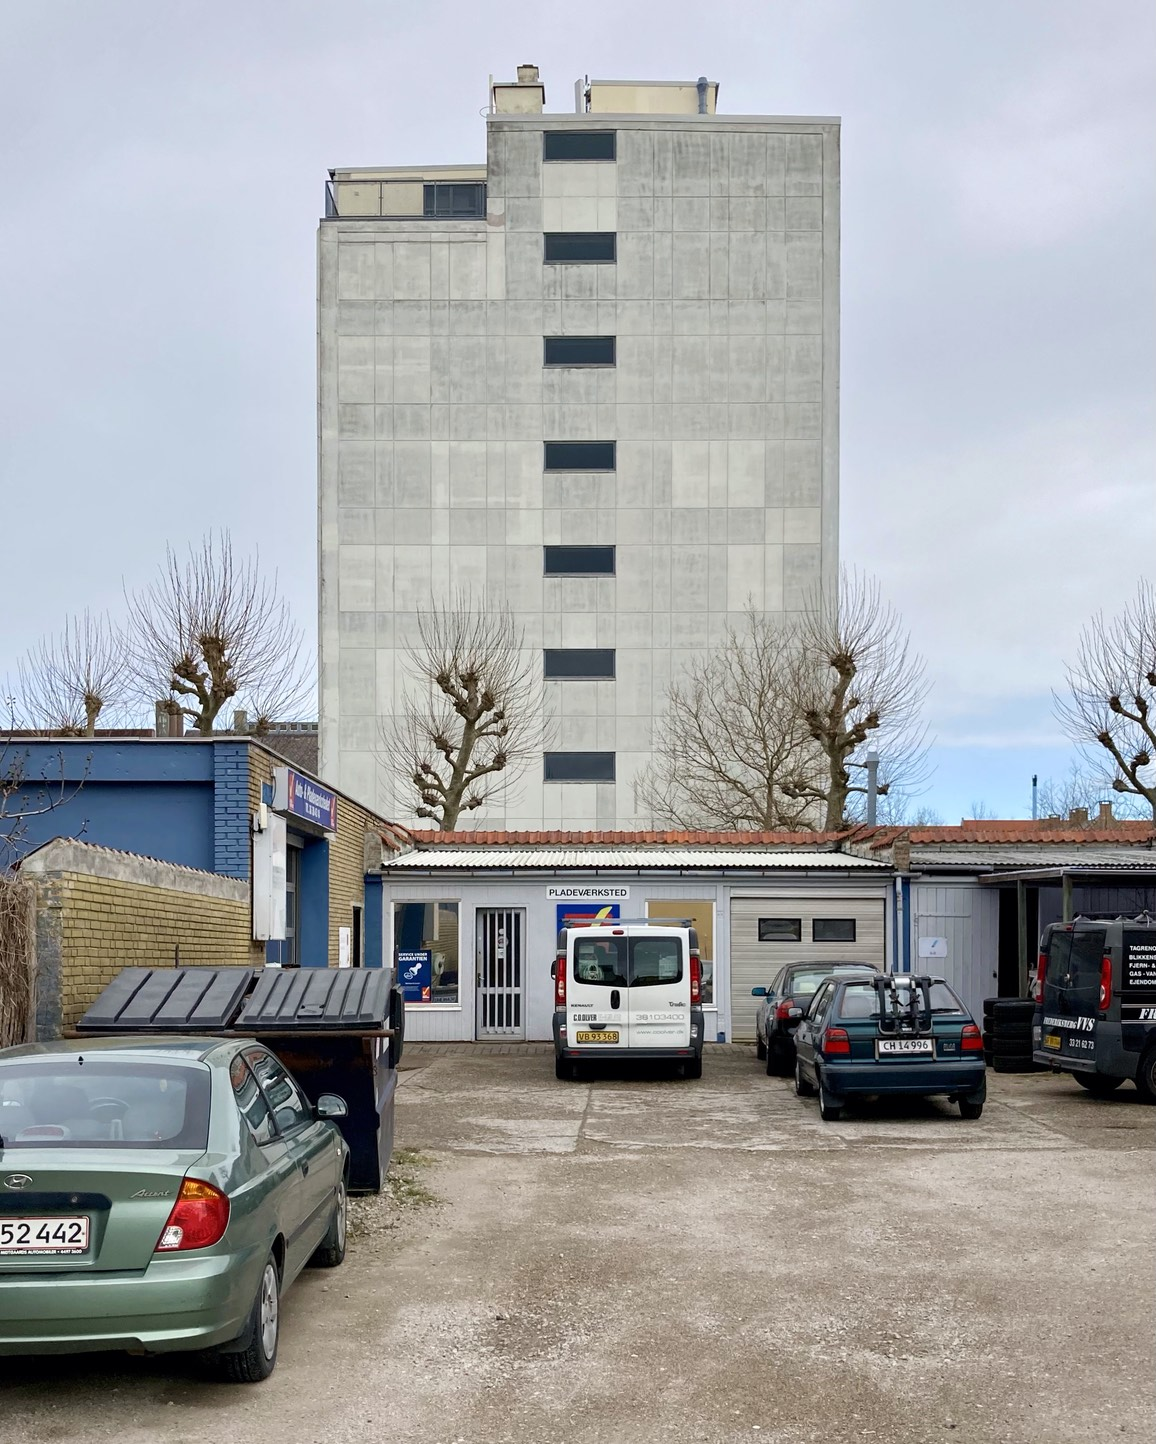 (Auto &) Pladeværksted: Car mechanic courtyard with the concrete of the Lundbeck building looming up behind it – mechanics for the human body. With strange hairy Van Gogh trees in the whatever-mans-land between them.